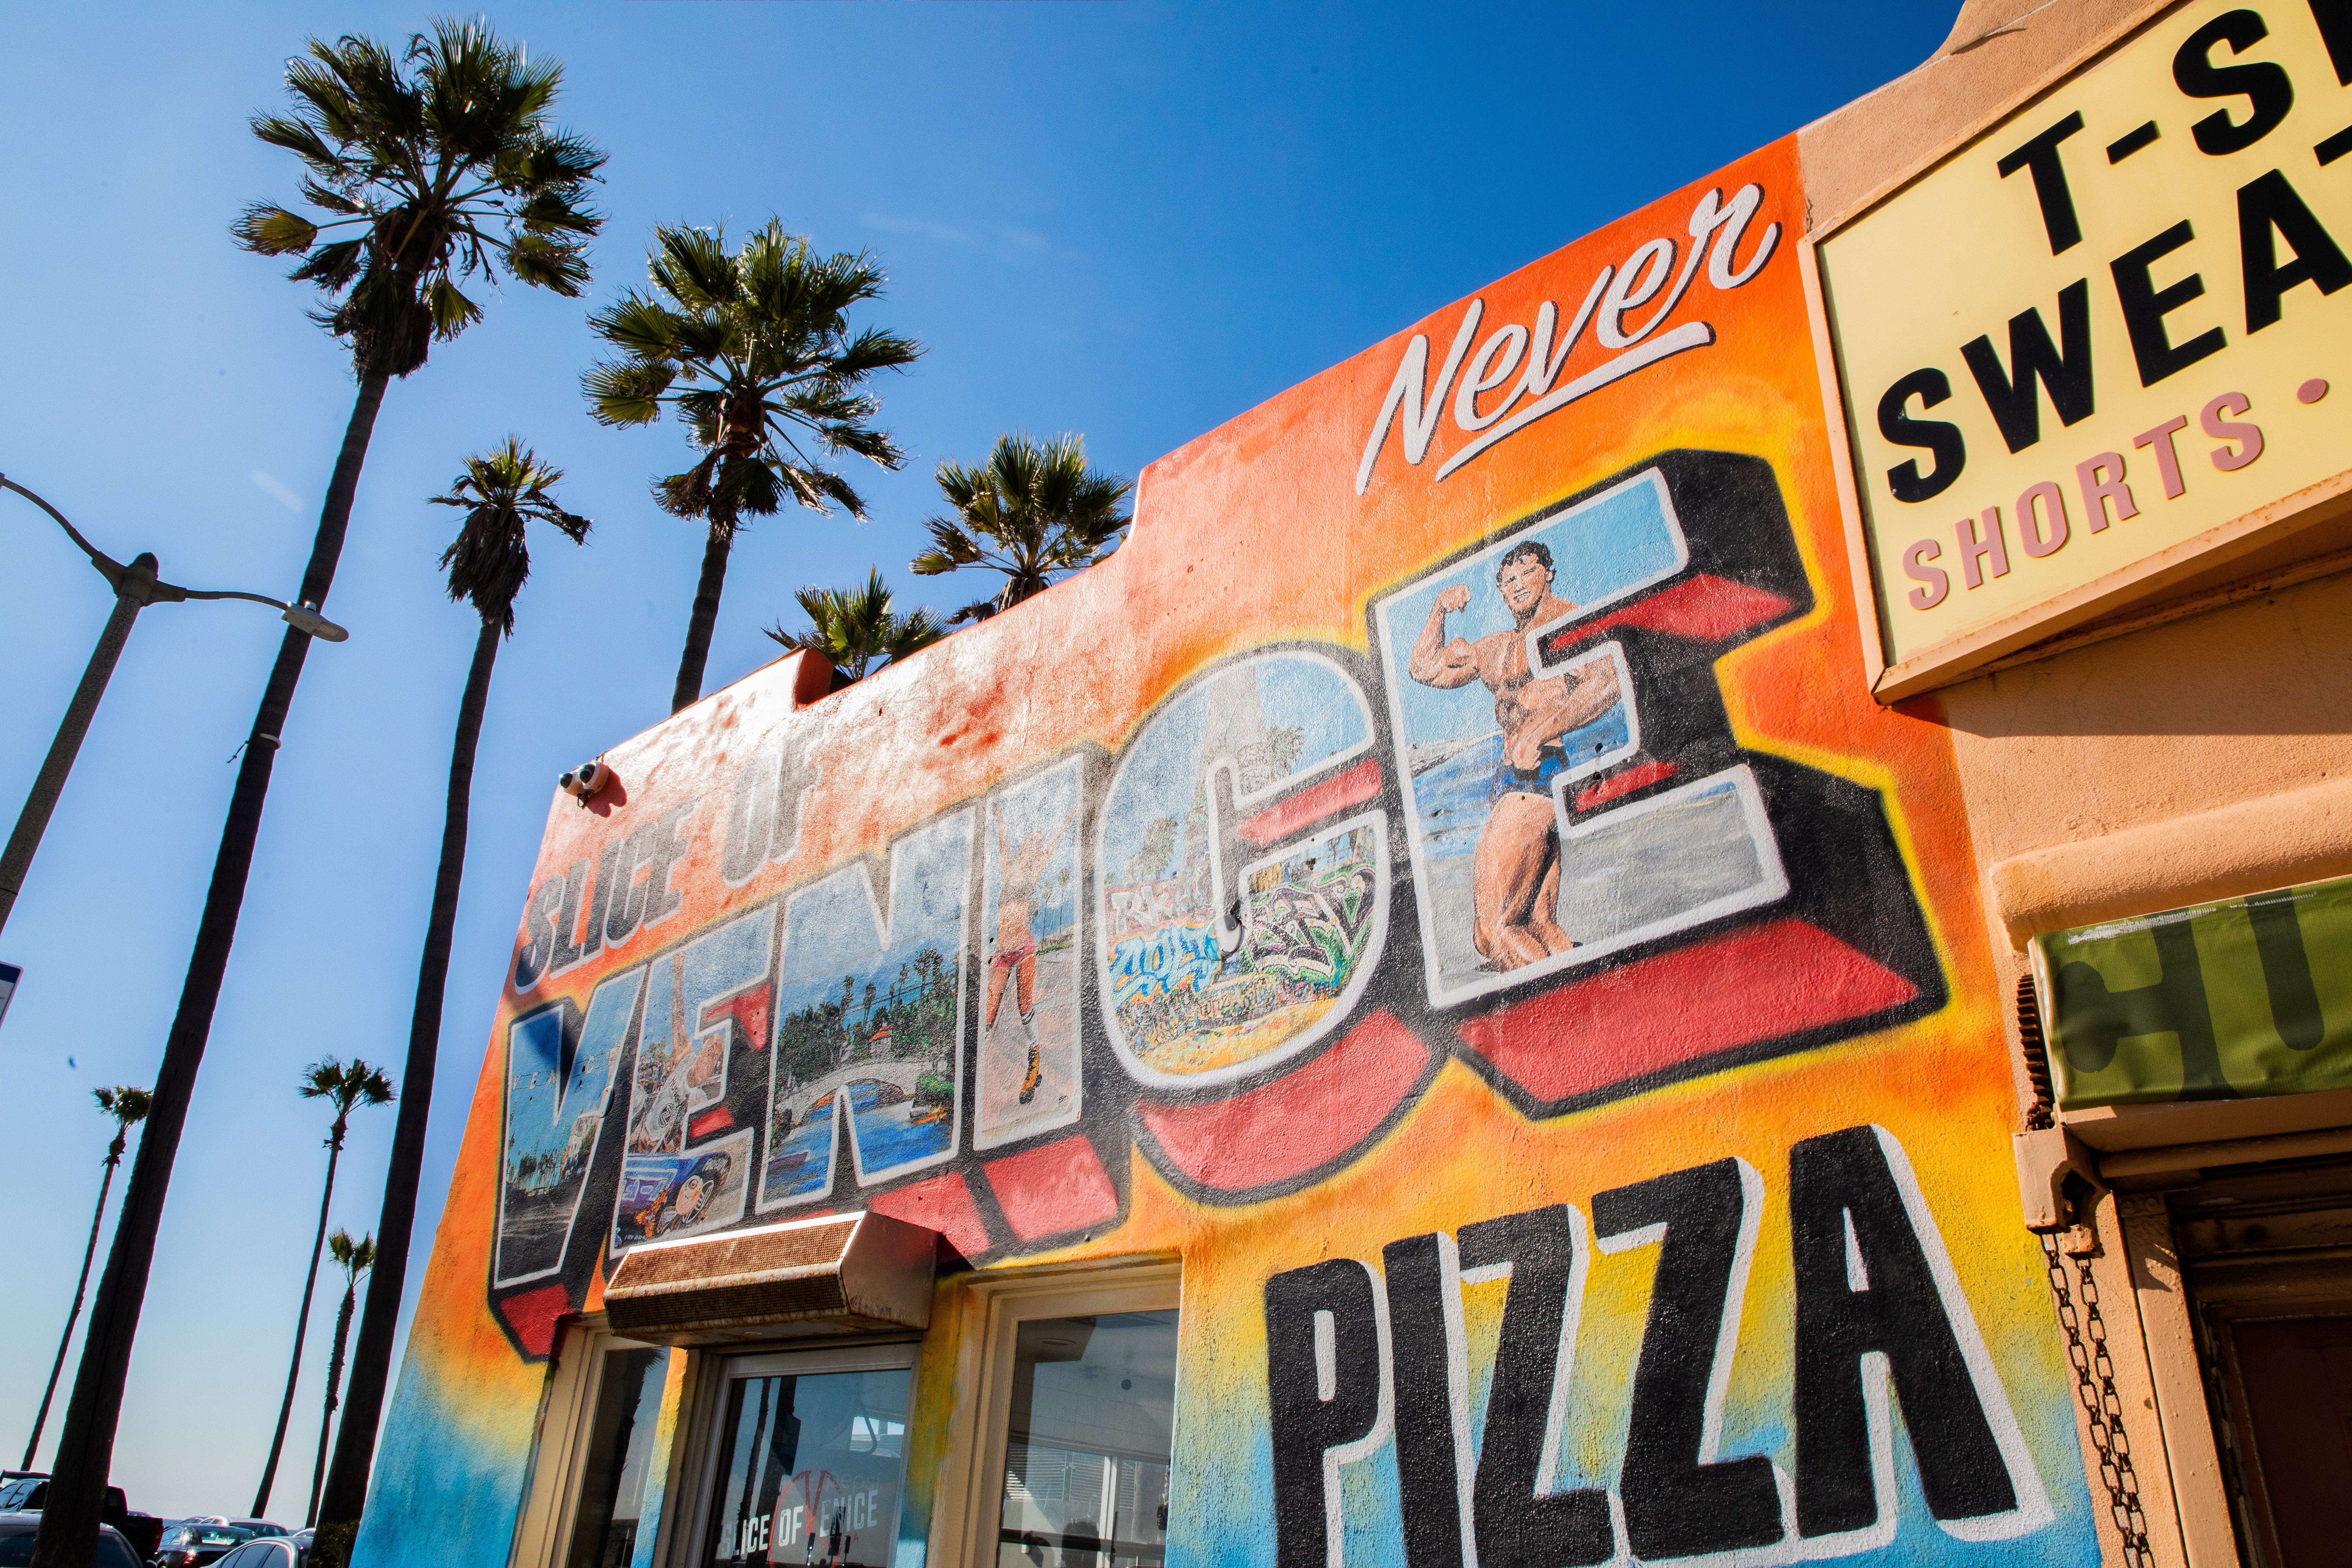 Mural for a pizza shop in Venice